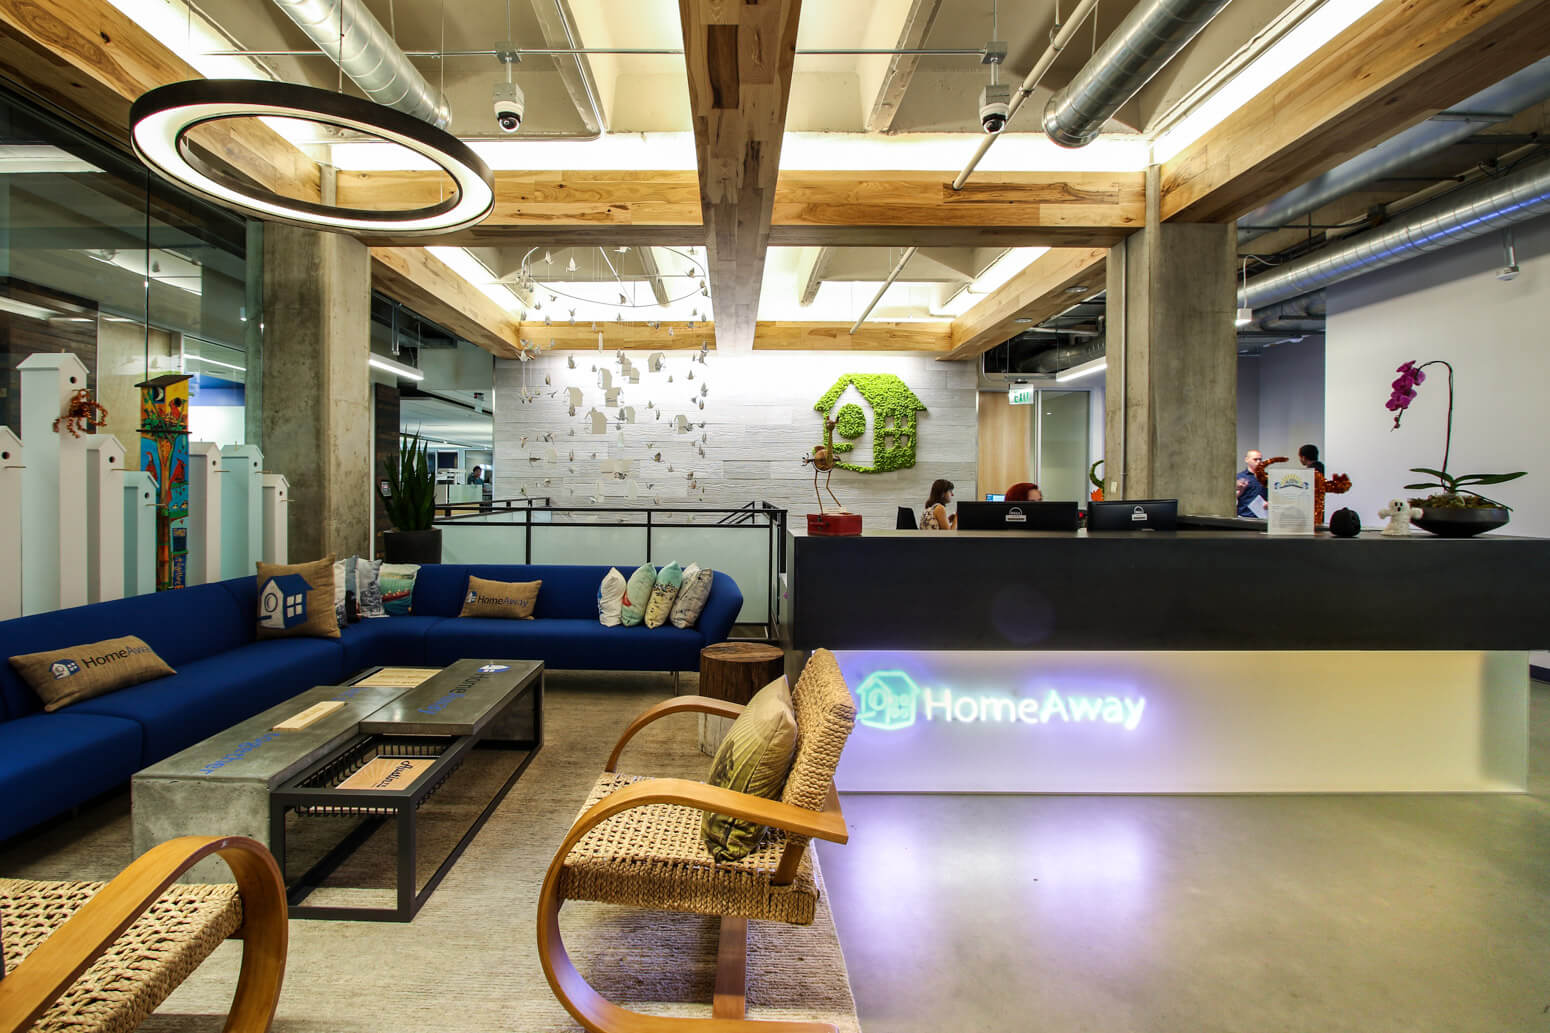 HomeAway Austin Office Killer Spaces-3